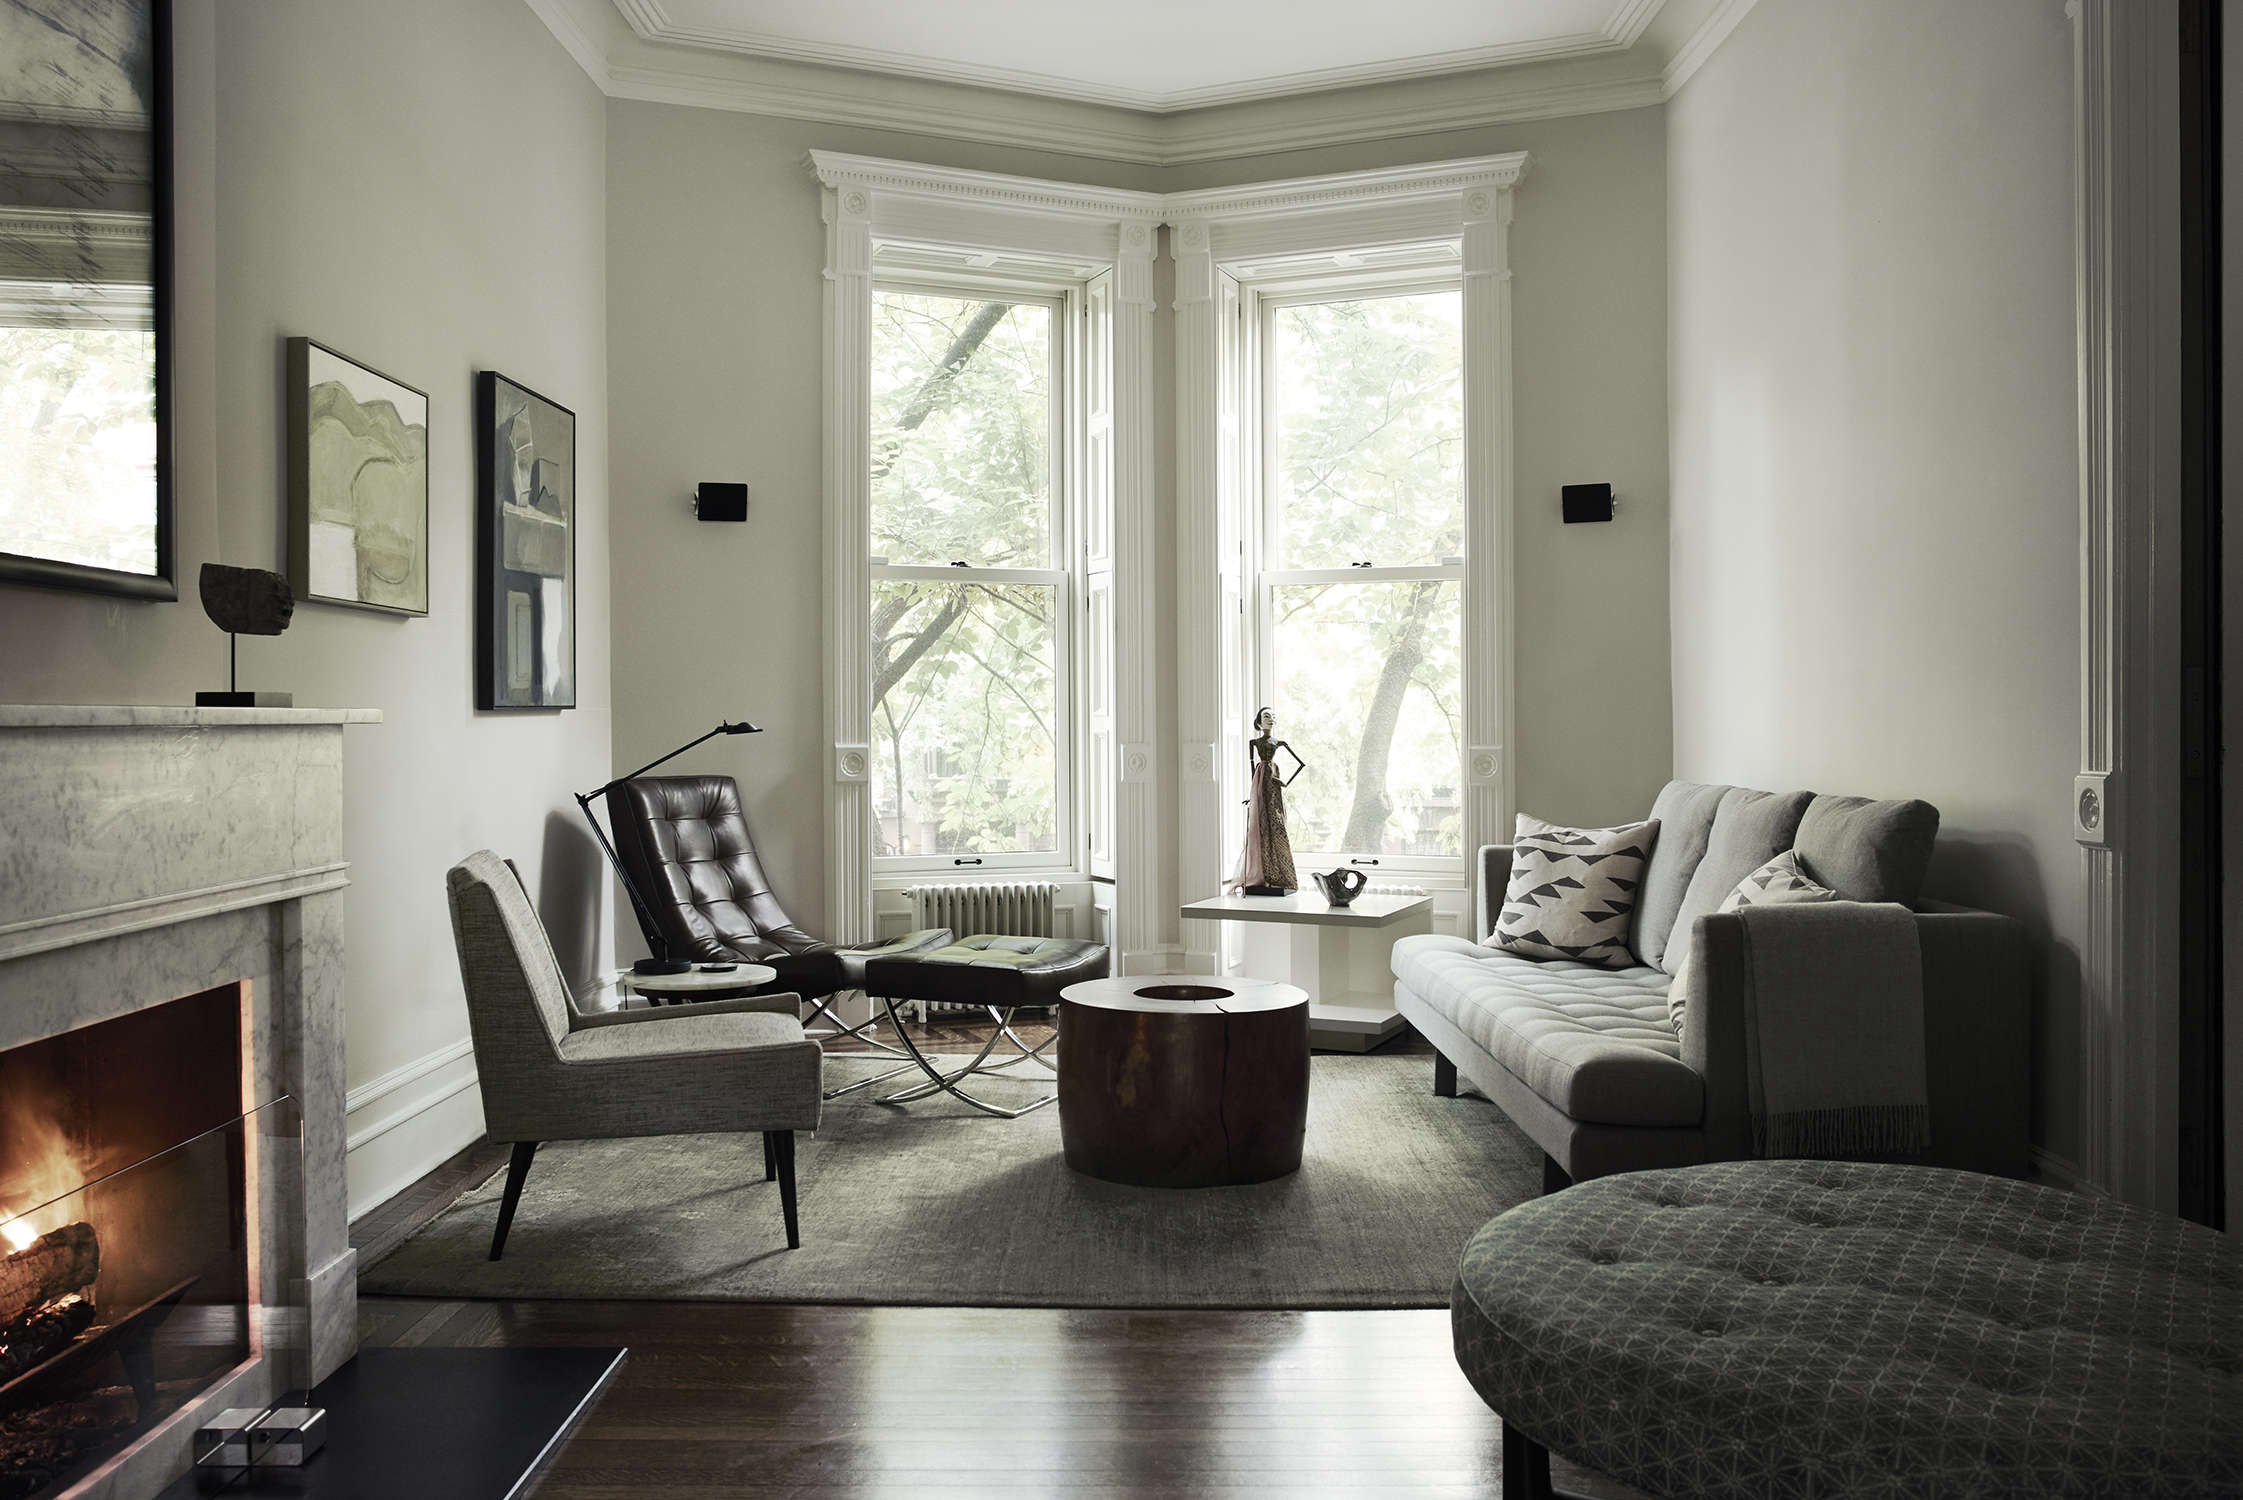 Brooklyn townhouse remodel by Bangia Agostinho Architecture and Suzanne Shaker | Remodelista